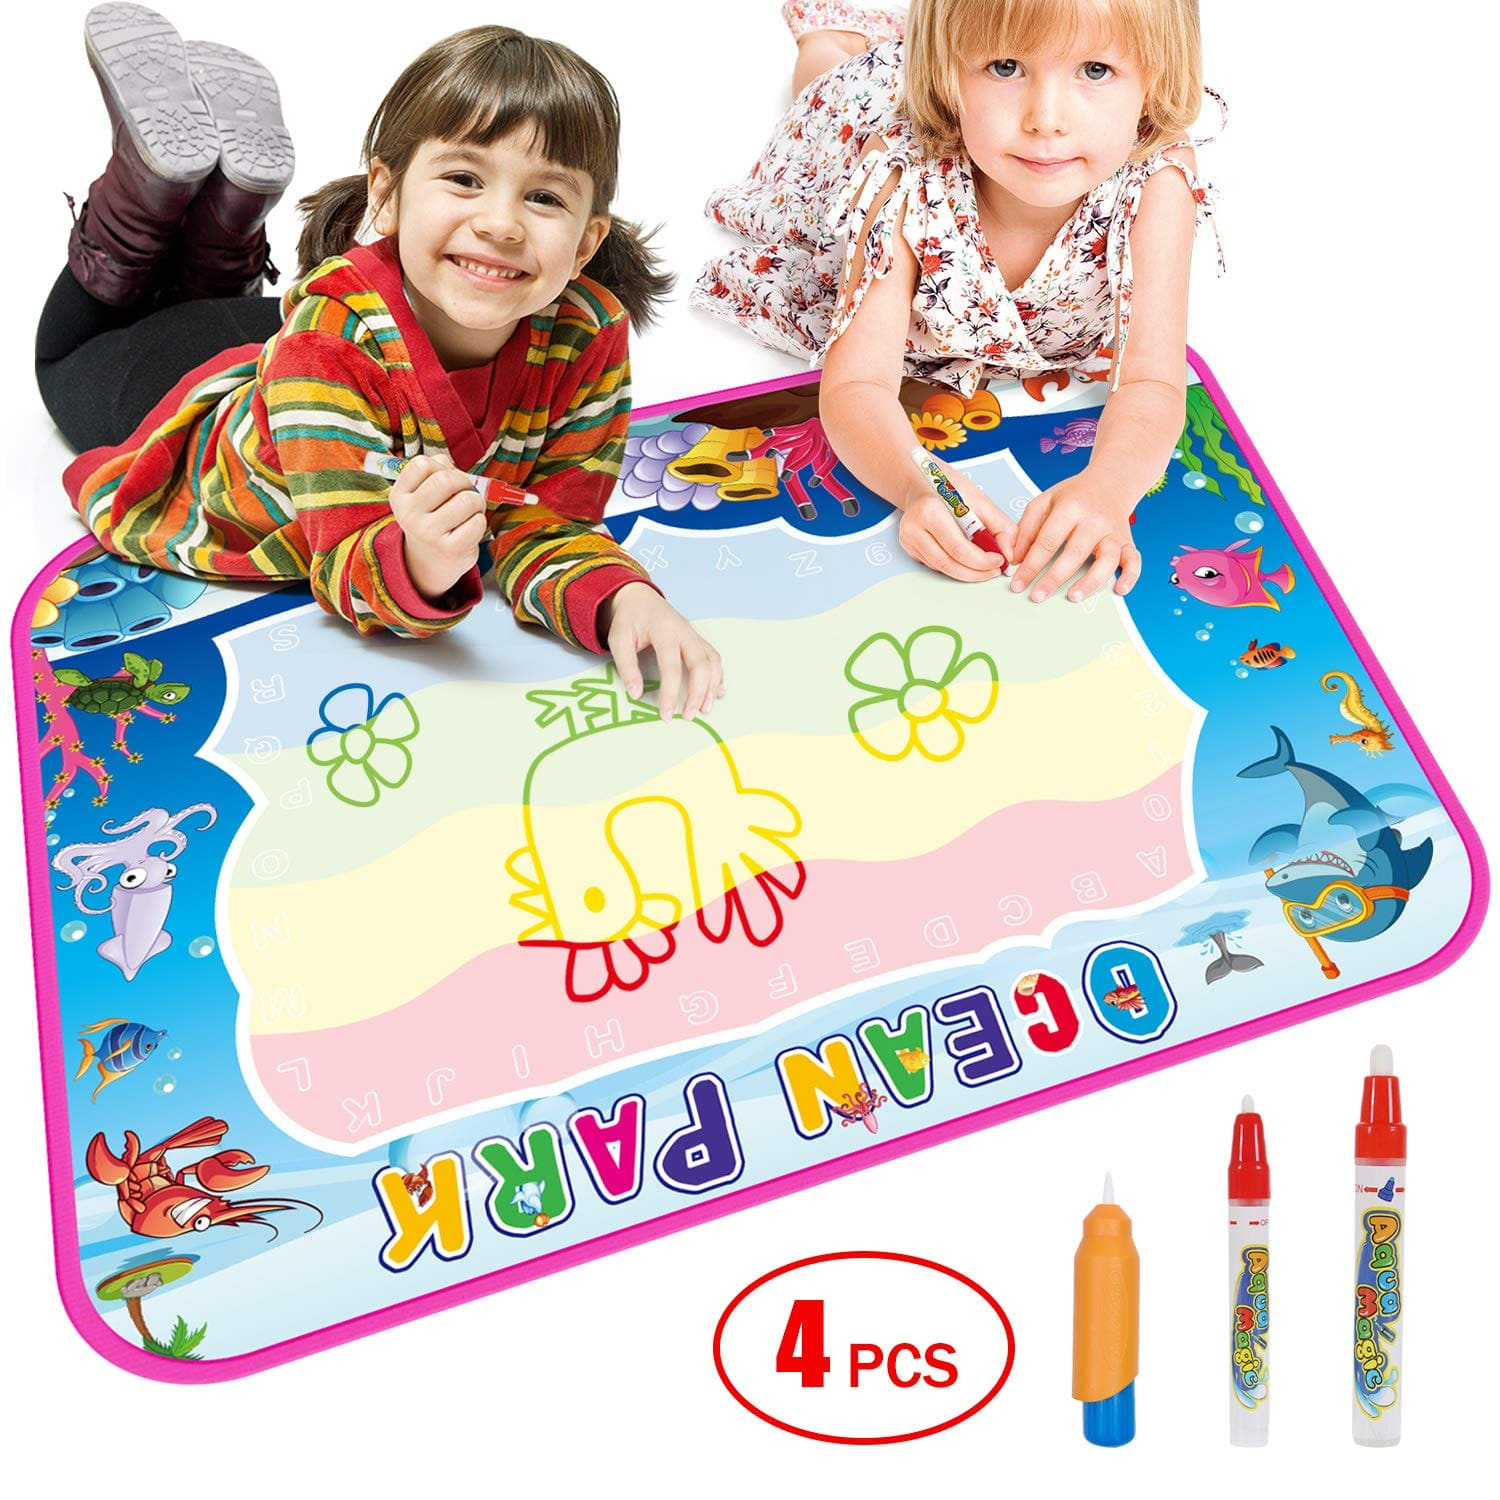 Drawing Doodle Mat, Painting Writing Magic Mat with 3 Magic Water Pens, for Kids Girl Boy Gift $9.95 + F/S